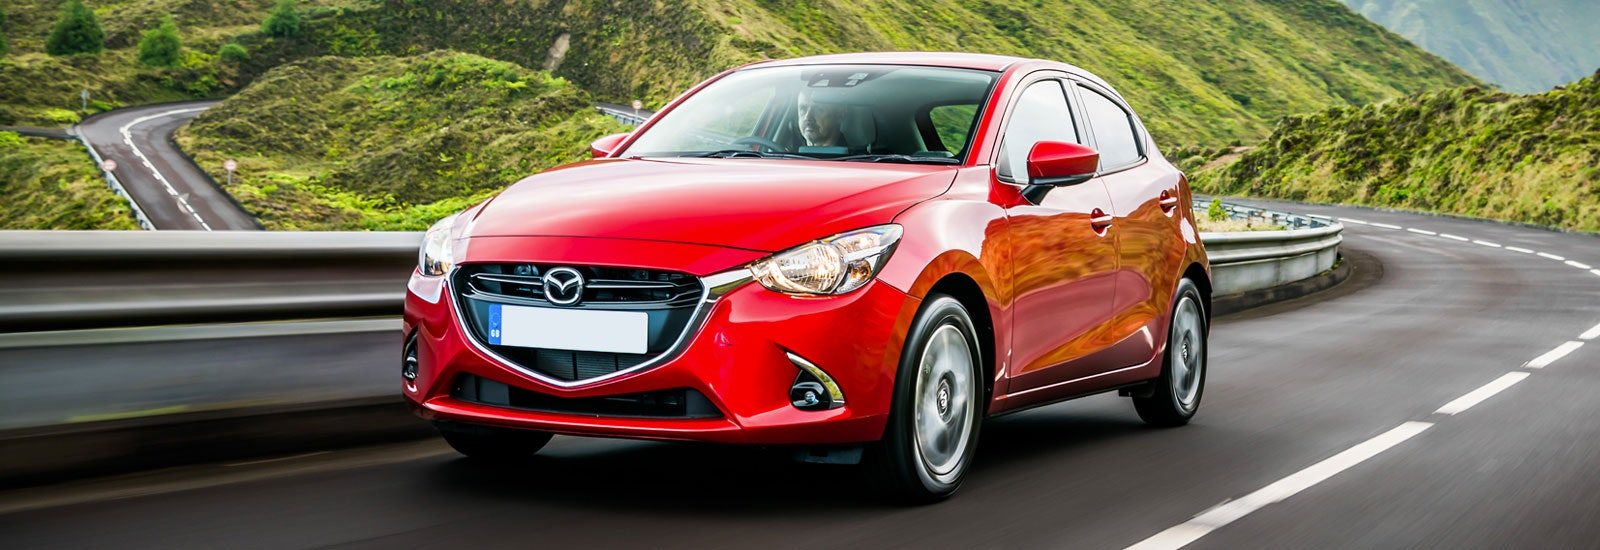 Red Mazda 2 driving, viewed from the front